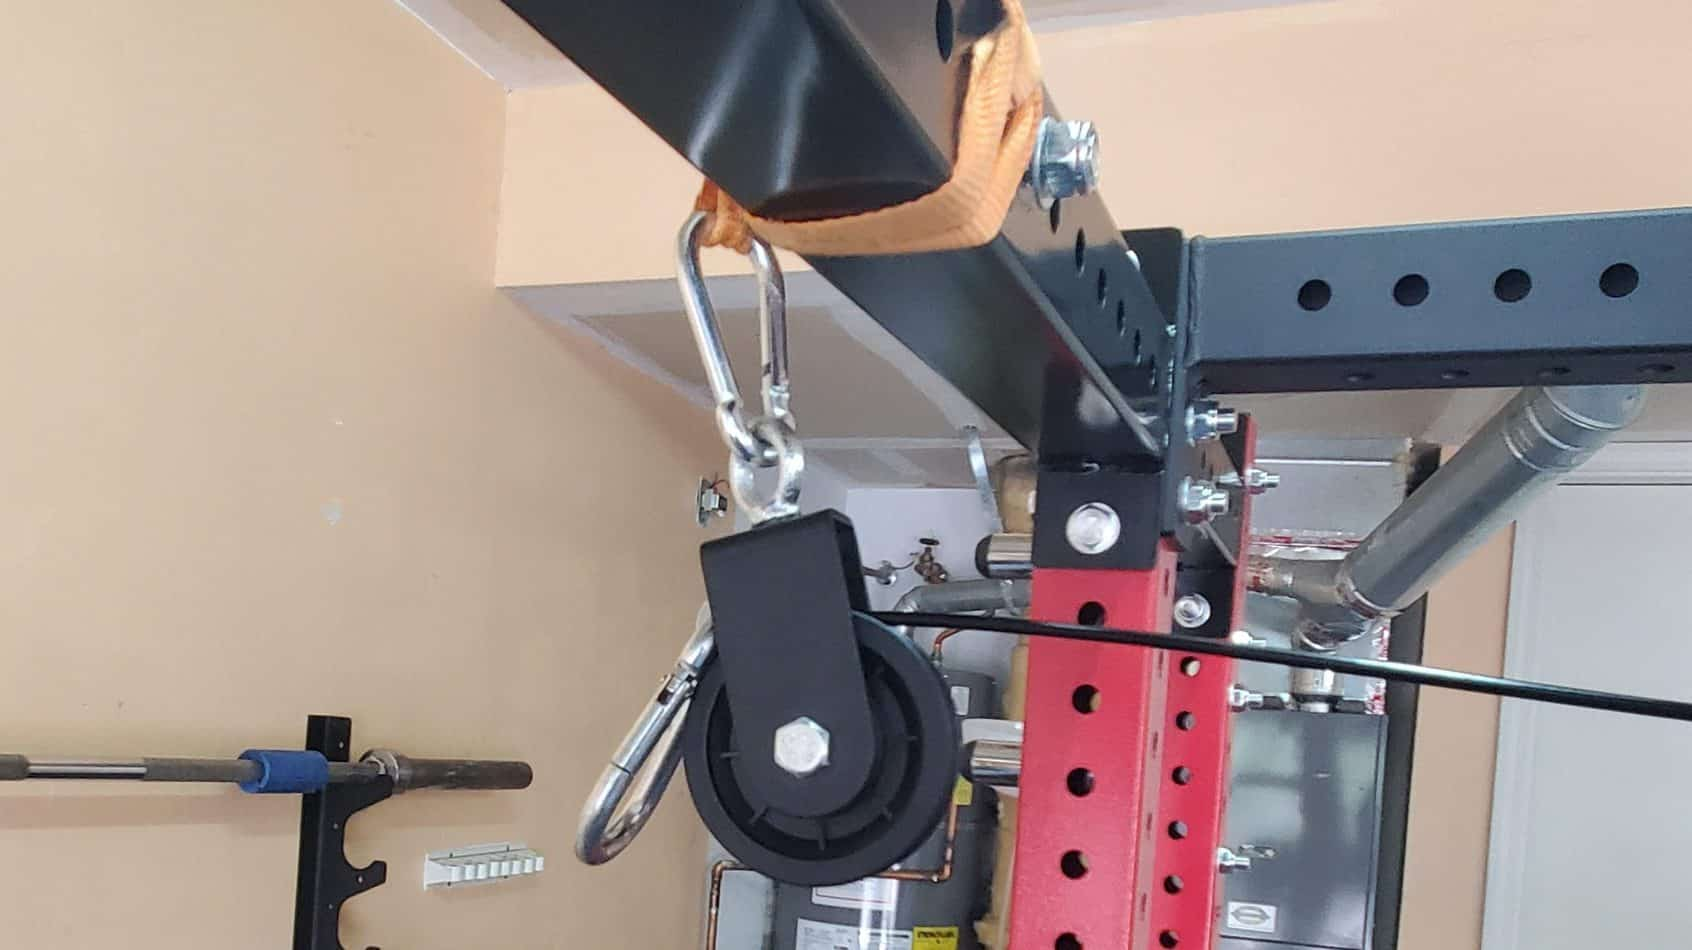 How To Make Your Own DIY Home Gym Pulley System second pulley and carabiner set